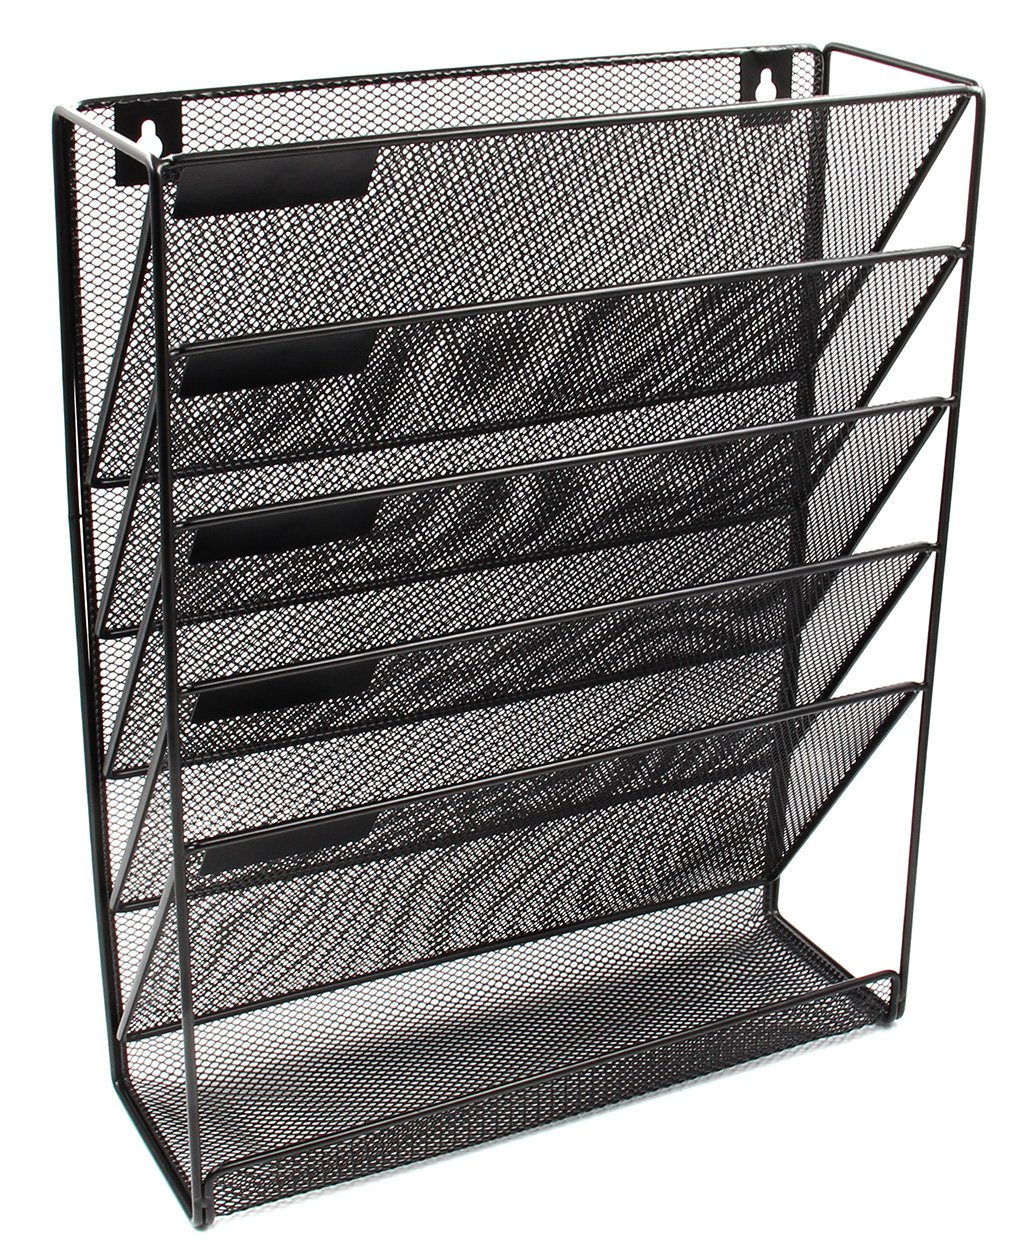 EasyPAG 6 Tier Hanging File Holder Wall Mount Document Letter Tray Organizer,Black